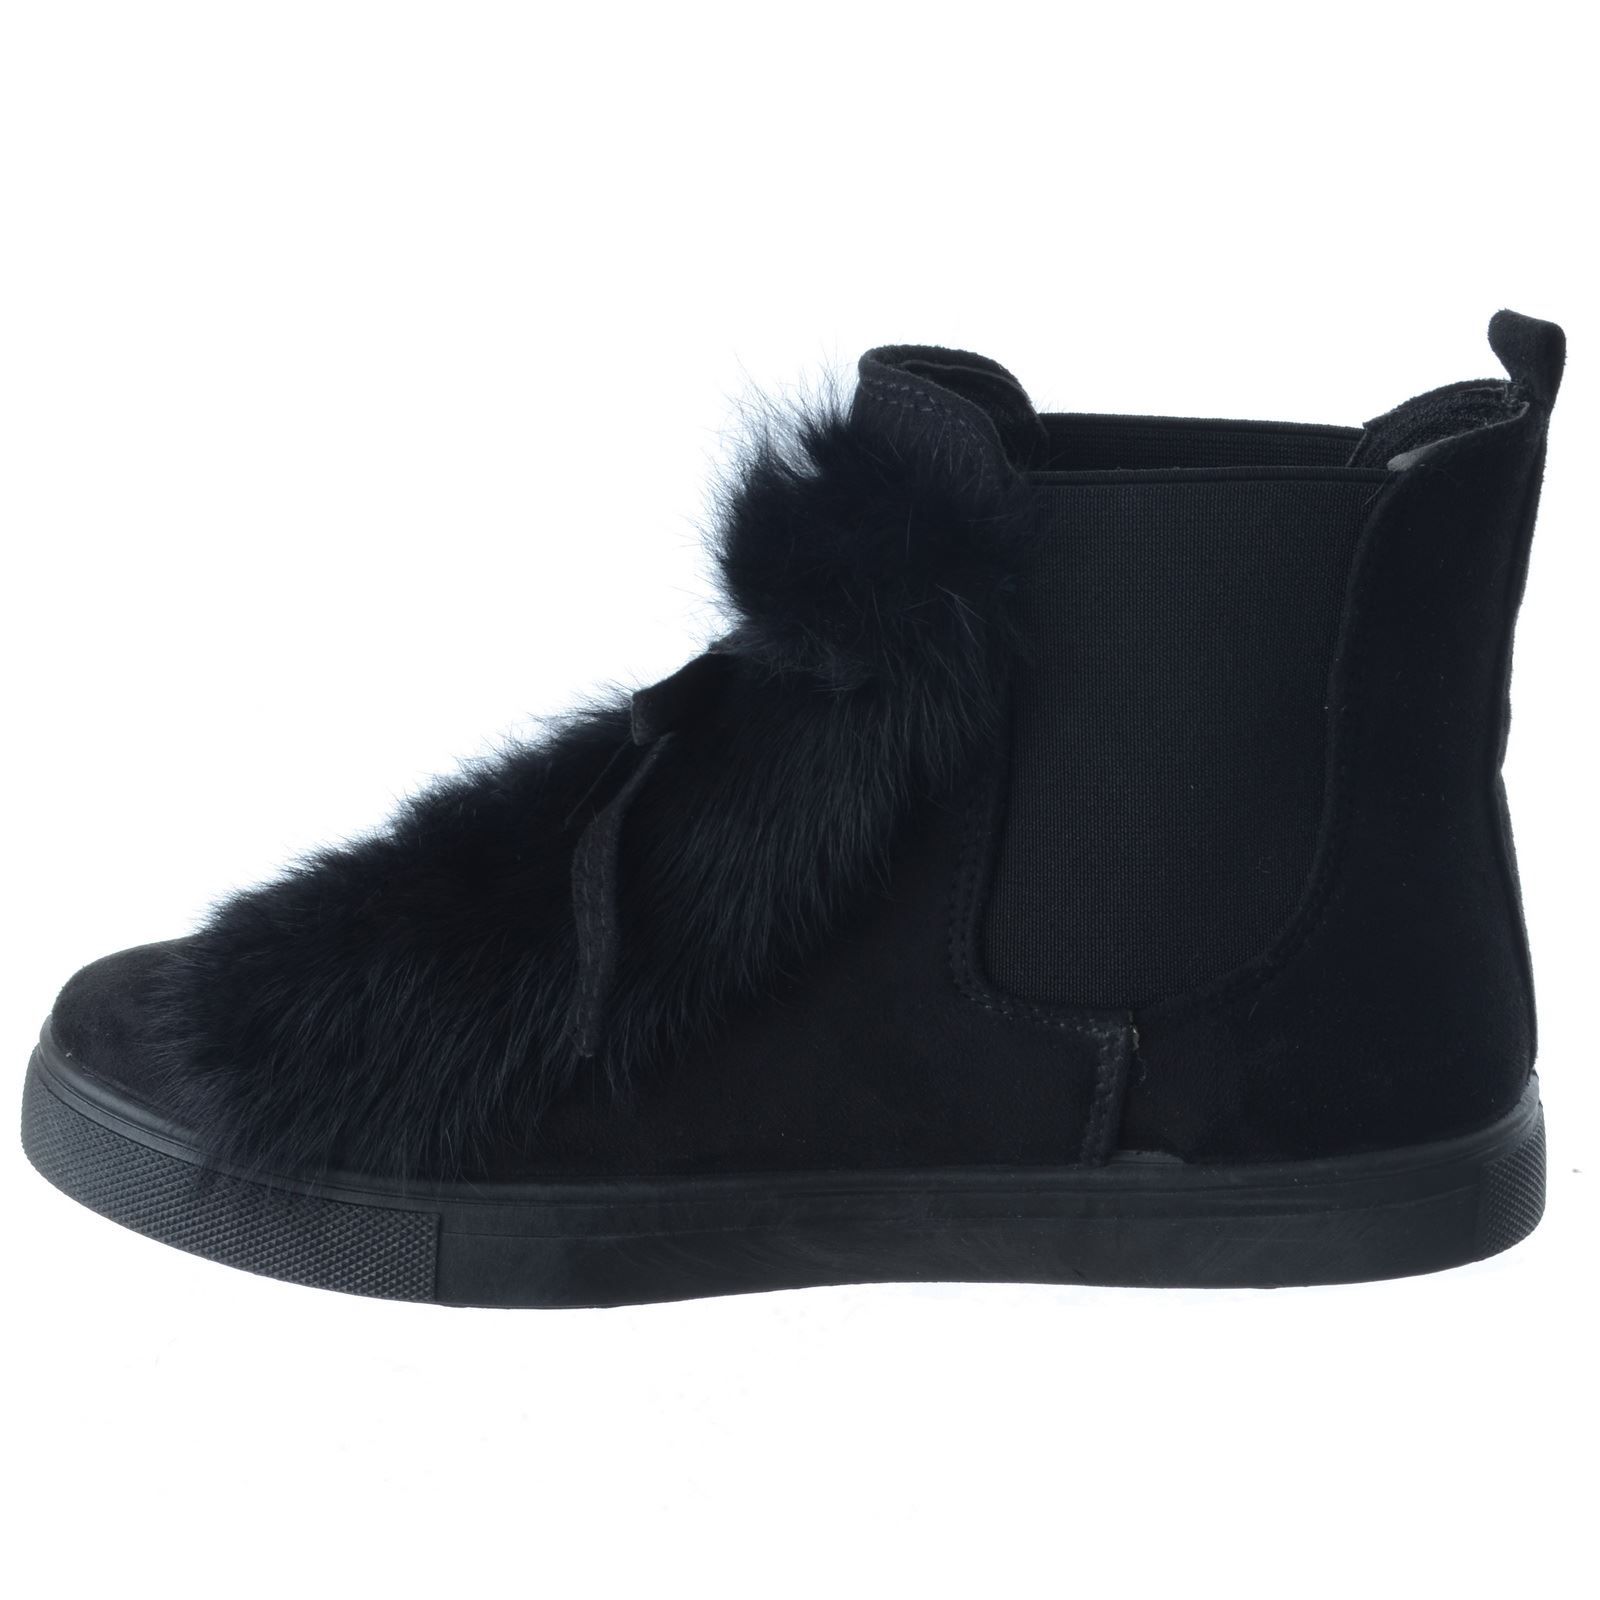 LADIES WOMENS LOW FLAT HEEL CHELSEA ANKLE BOOTS TRAINERS FUR PATCH SNEAKERS SIZE